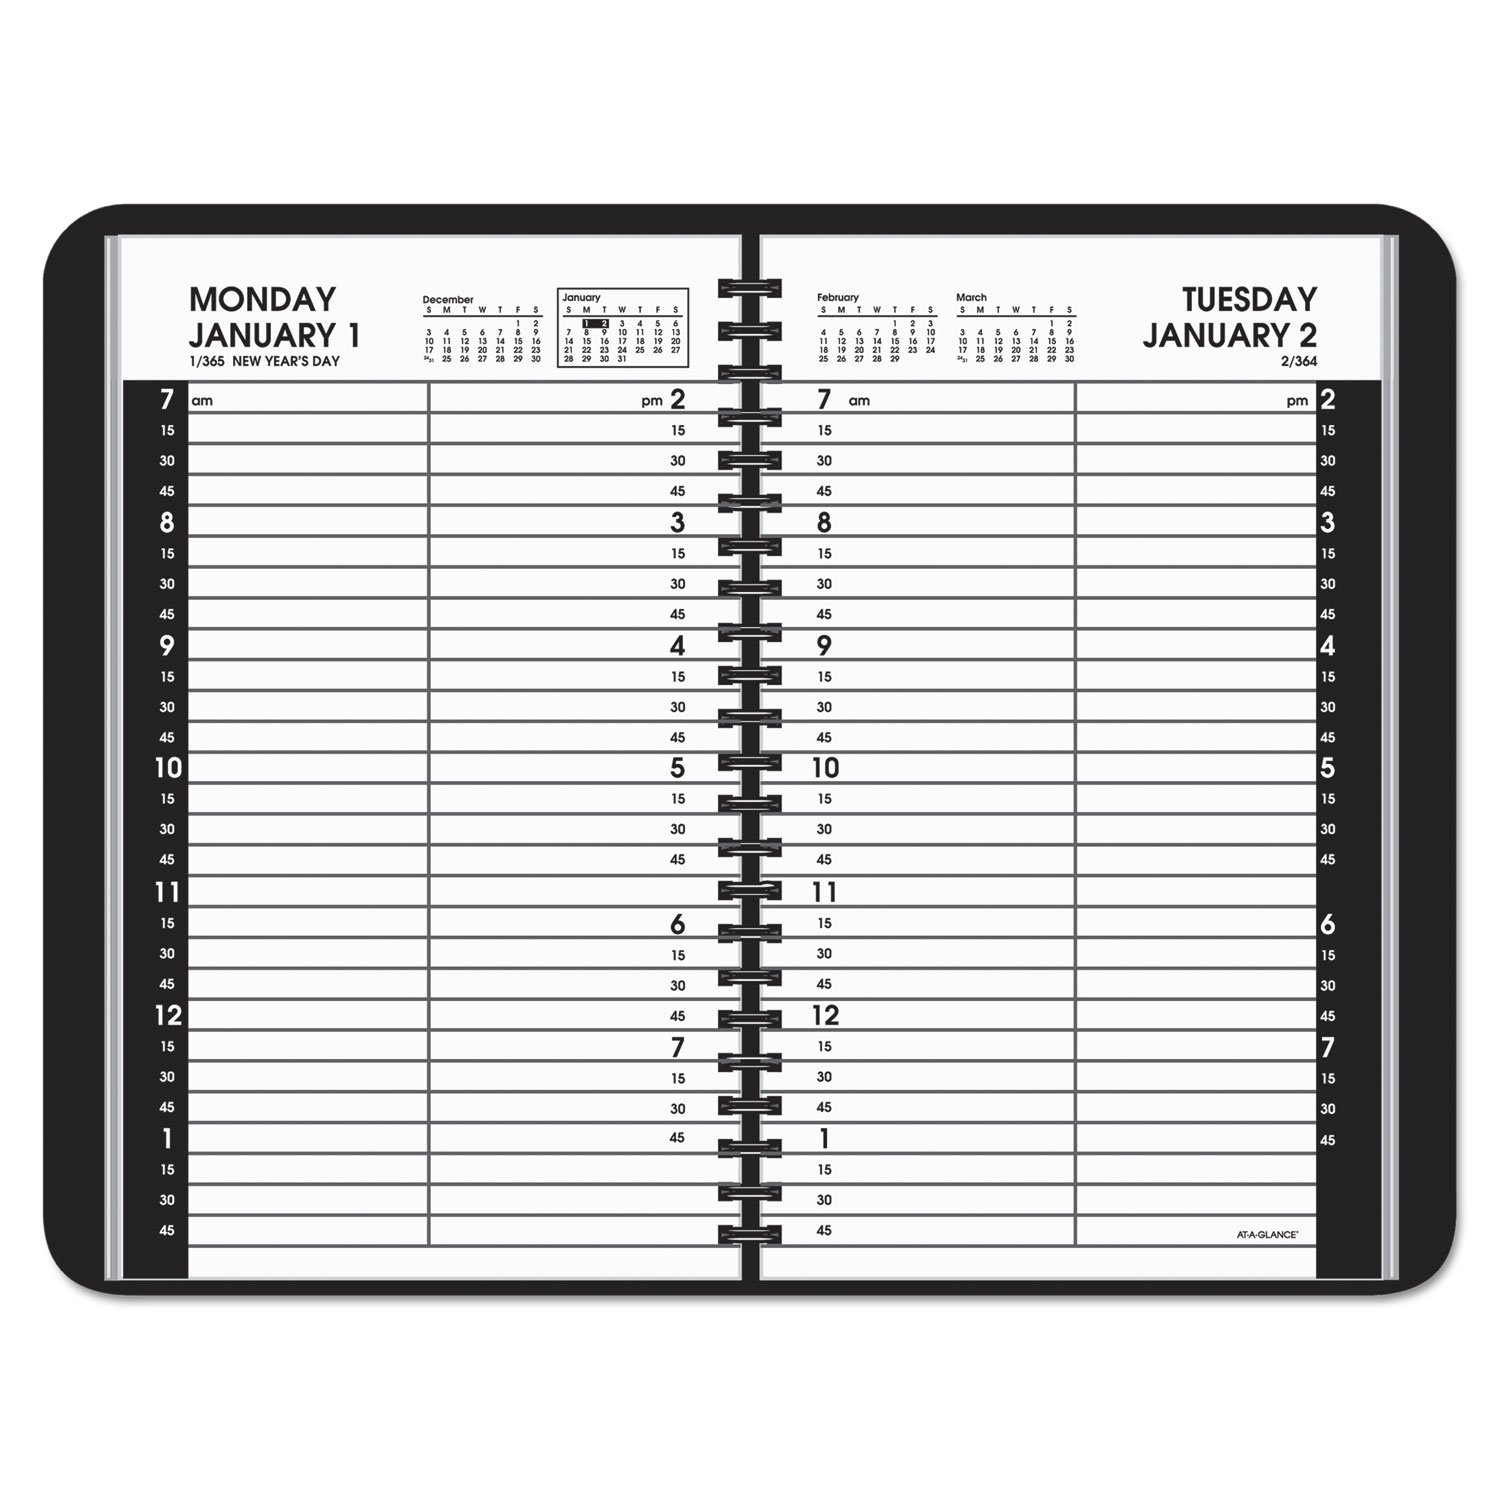 Daily Appointment Book With 15-Minute Appointmentsat-A 5 1/2 X 8 1/2 Page Daily Calendar Template Editable